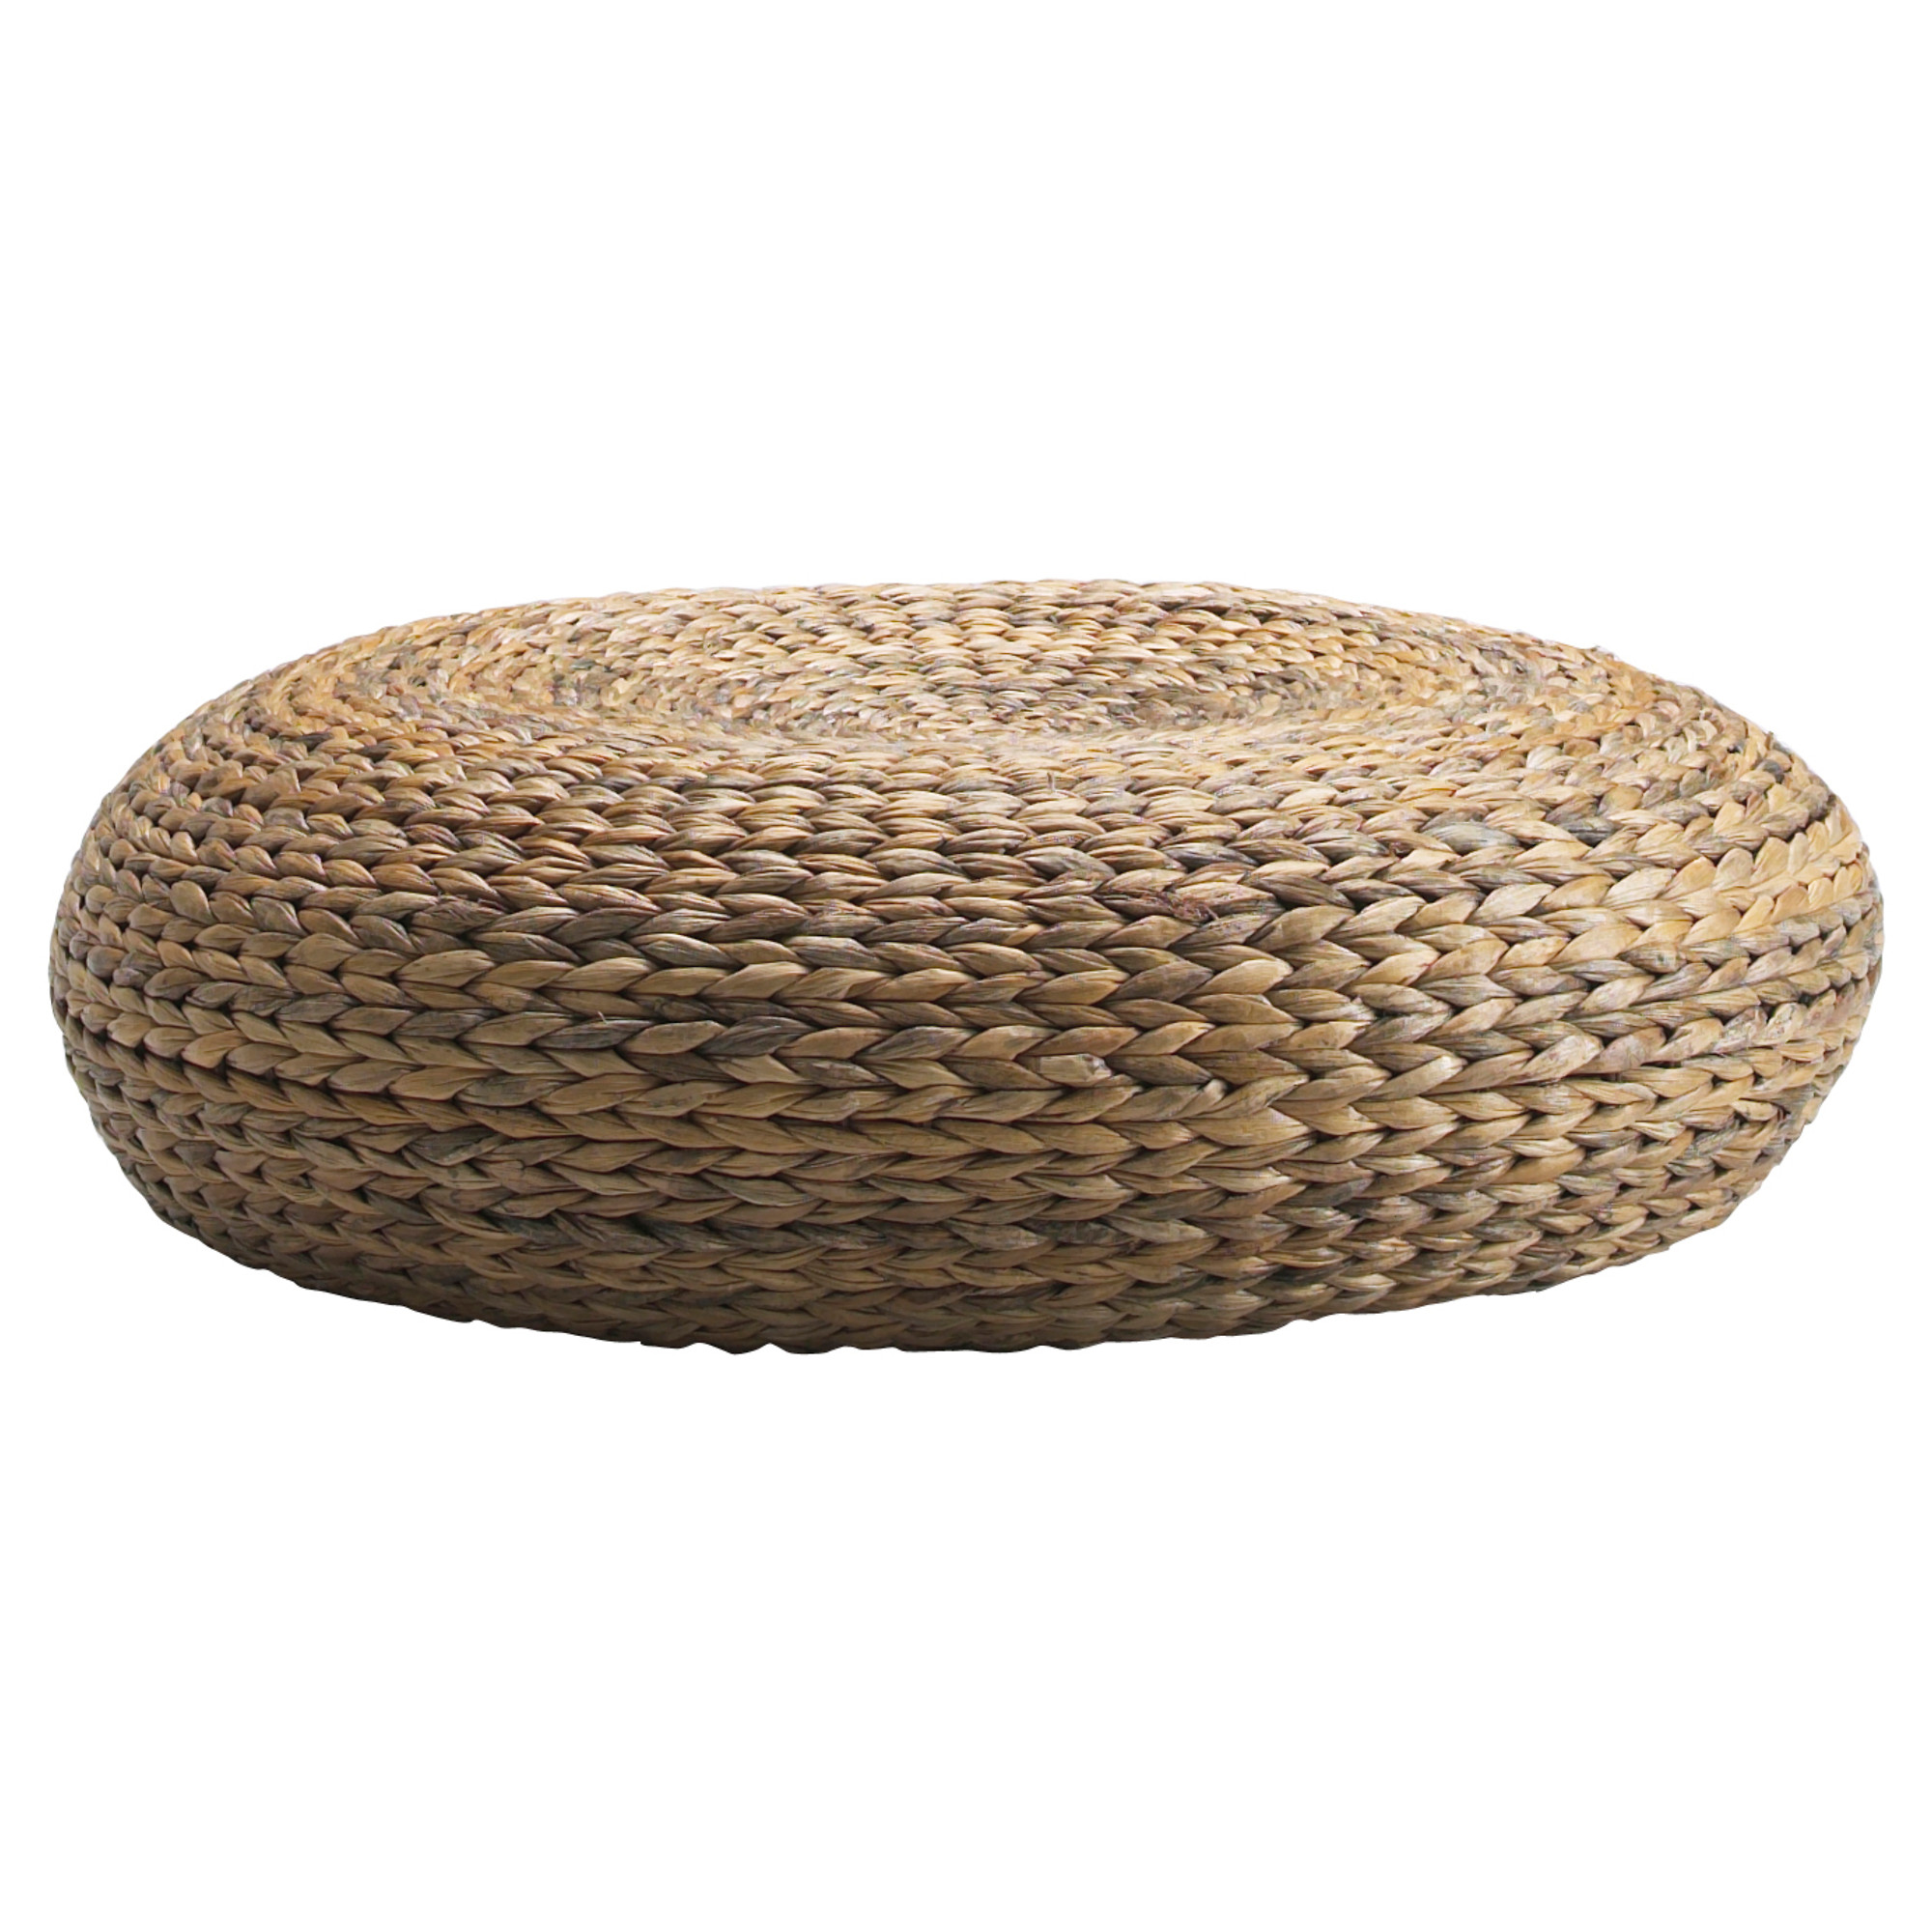 Pouf Ottoman Ikea Alseda Stool Banana Fiber  Pinterest  Stools Foot Stools And Natural